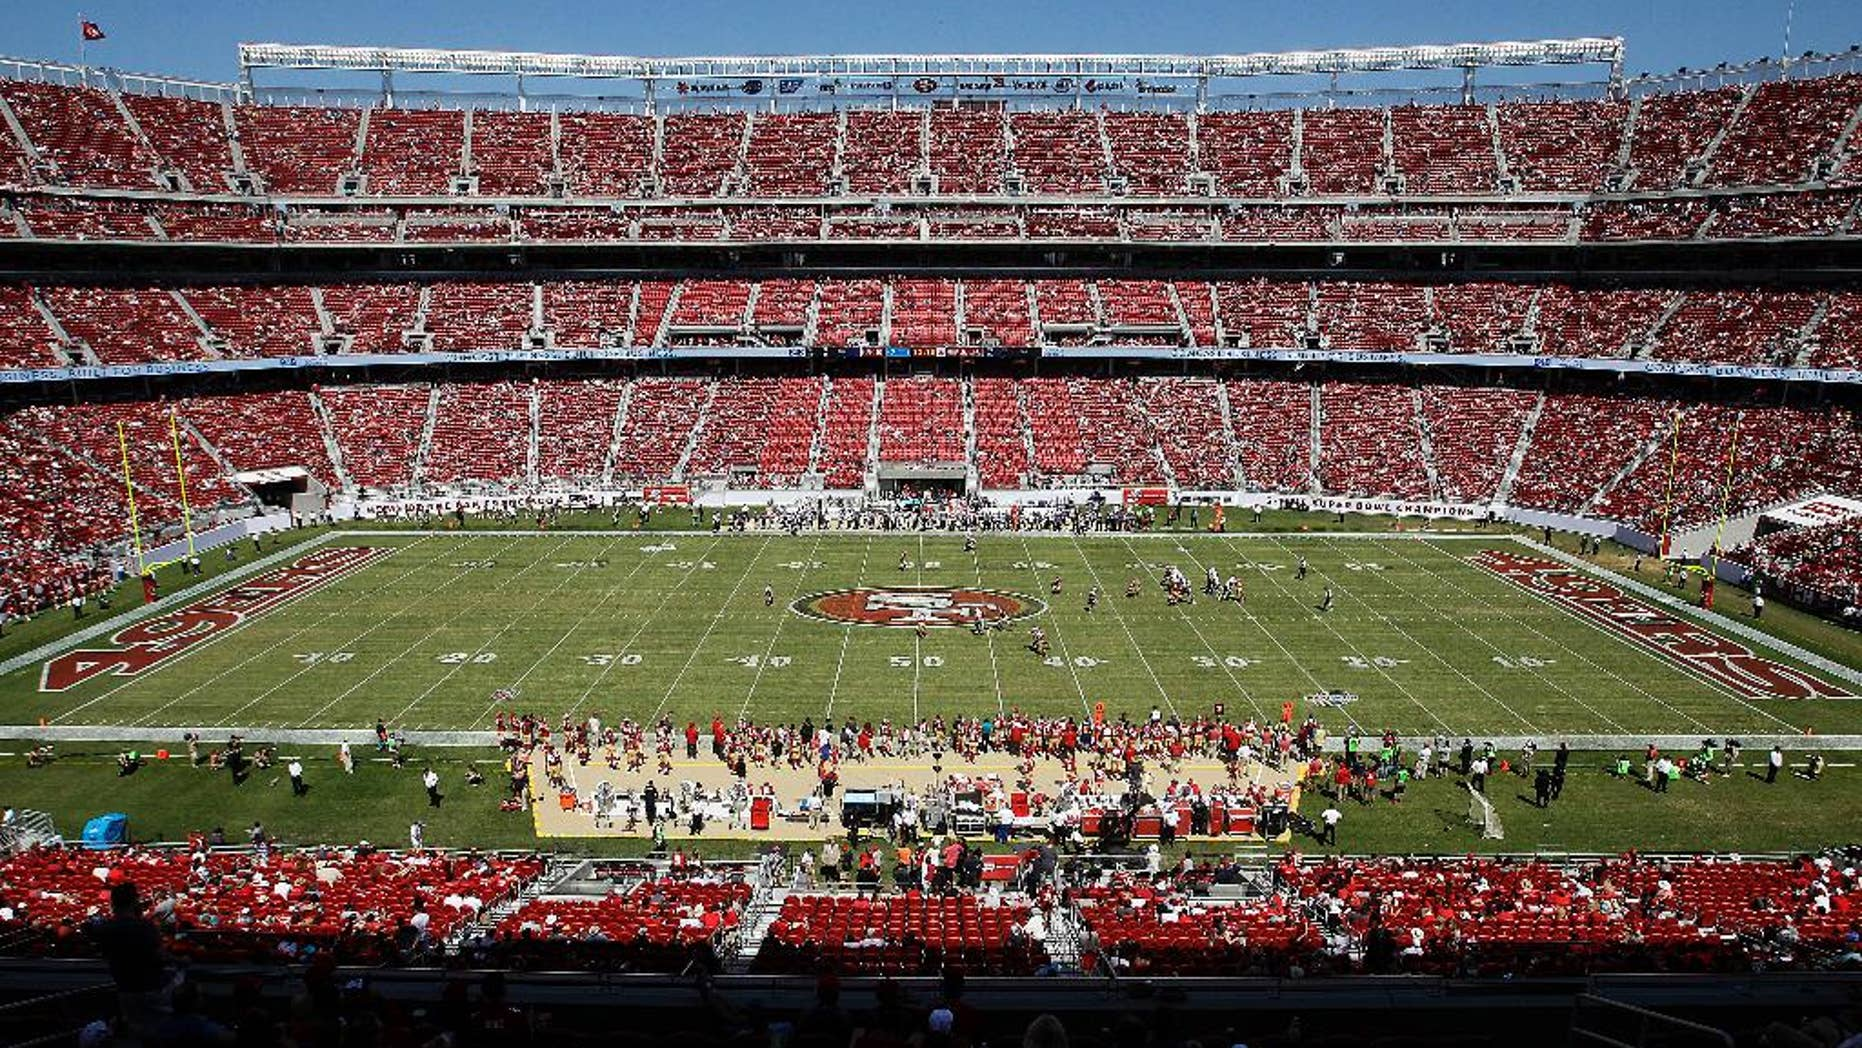 The field at Levi's Stadium is shown during the third quarter of an NFL preseason football game between the San Francisco 49ers and the San Diego Chargers in Santa Clara, Calif., Sunday, Aug. 24, 2014. (AP Photo/Mathew Sumner)